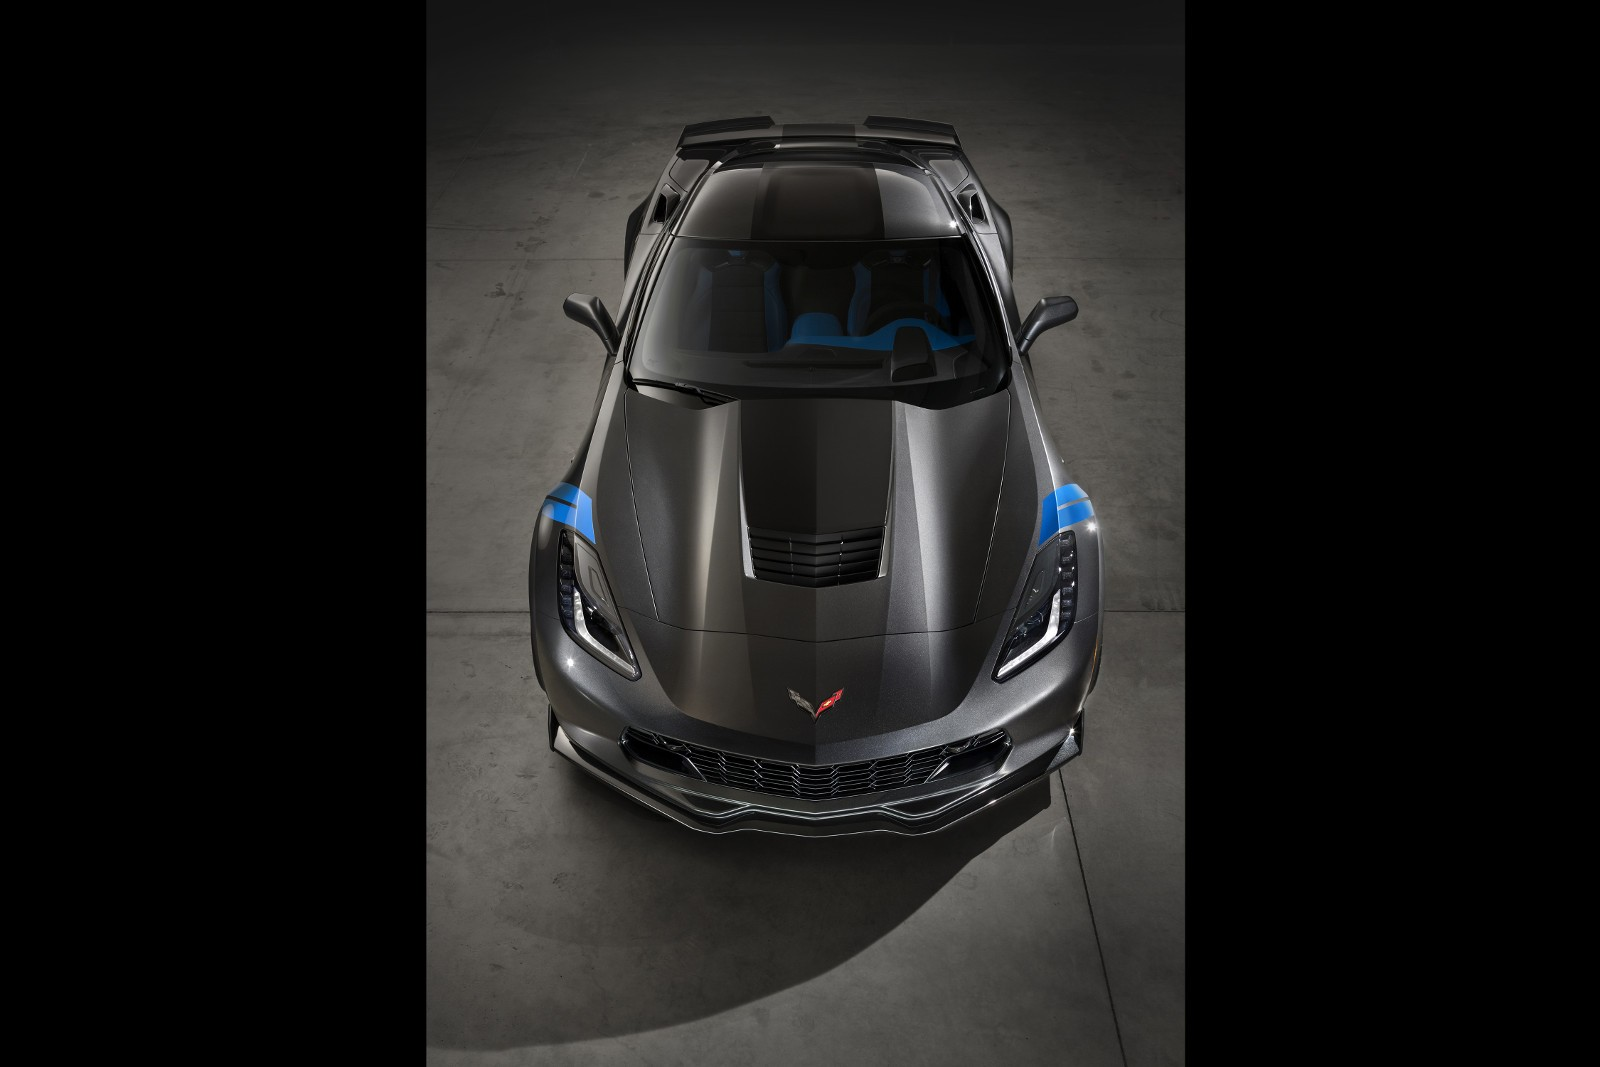 2017 chevrolet corvette grand sport delivers corvette zr1 like lap times autoevolution. Black Bedroom Furniture Sets. Home Design Ideas